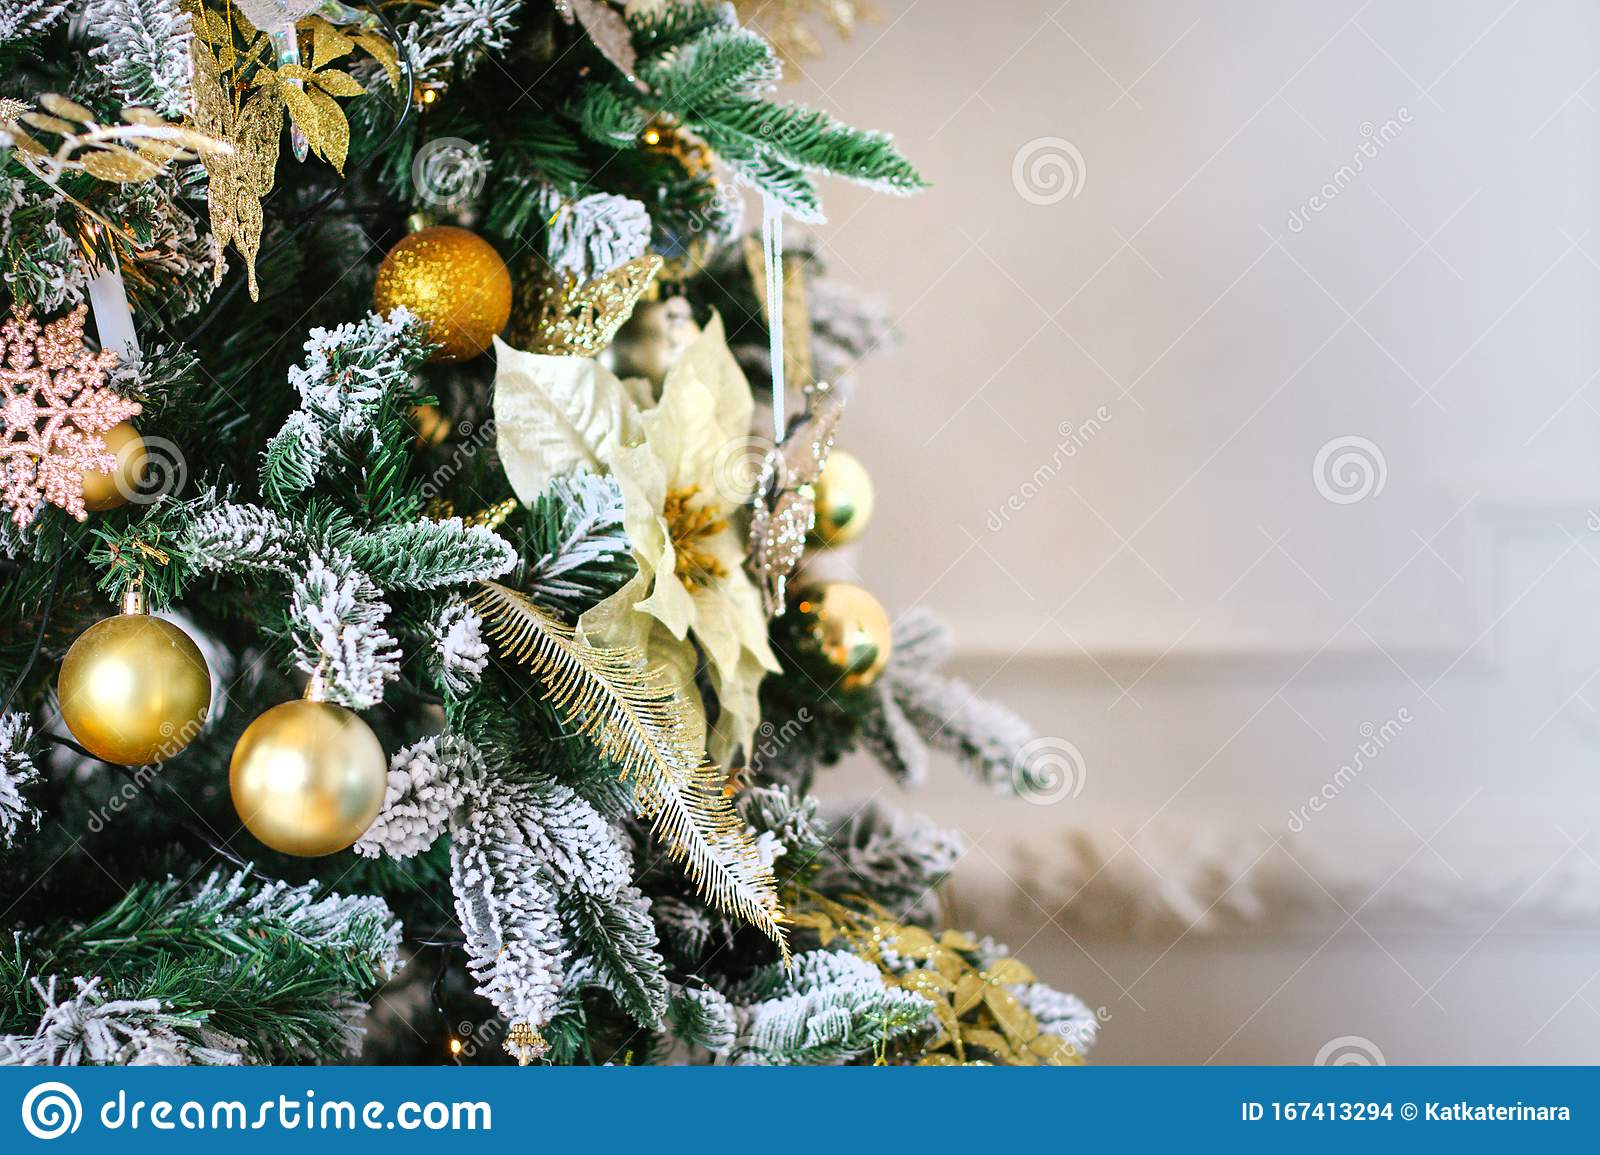 Pink And Gold Balls Of Christmas Tree Decoration In Classic And Luxury Colors On Bright Background Happy New Year And Xmas Theme Stock Photo Image Of Gold Bright 167413294